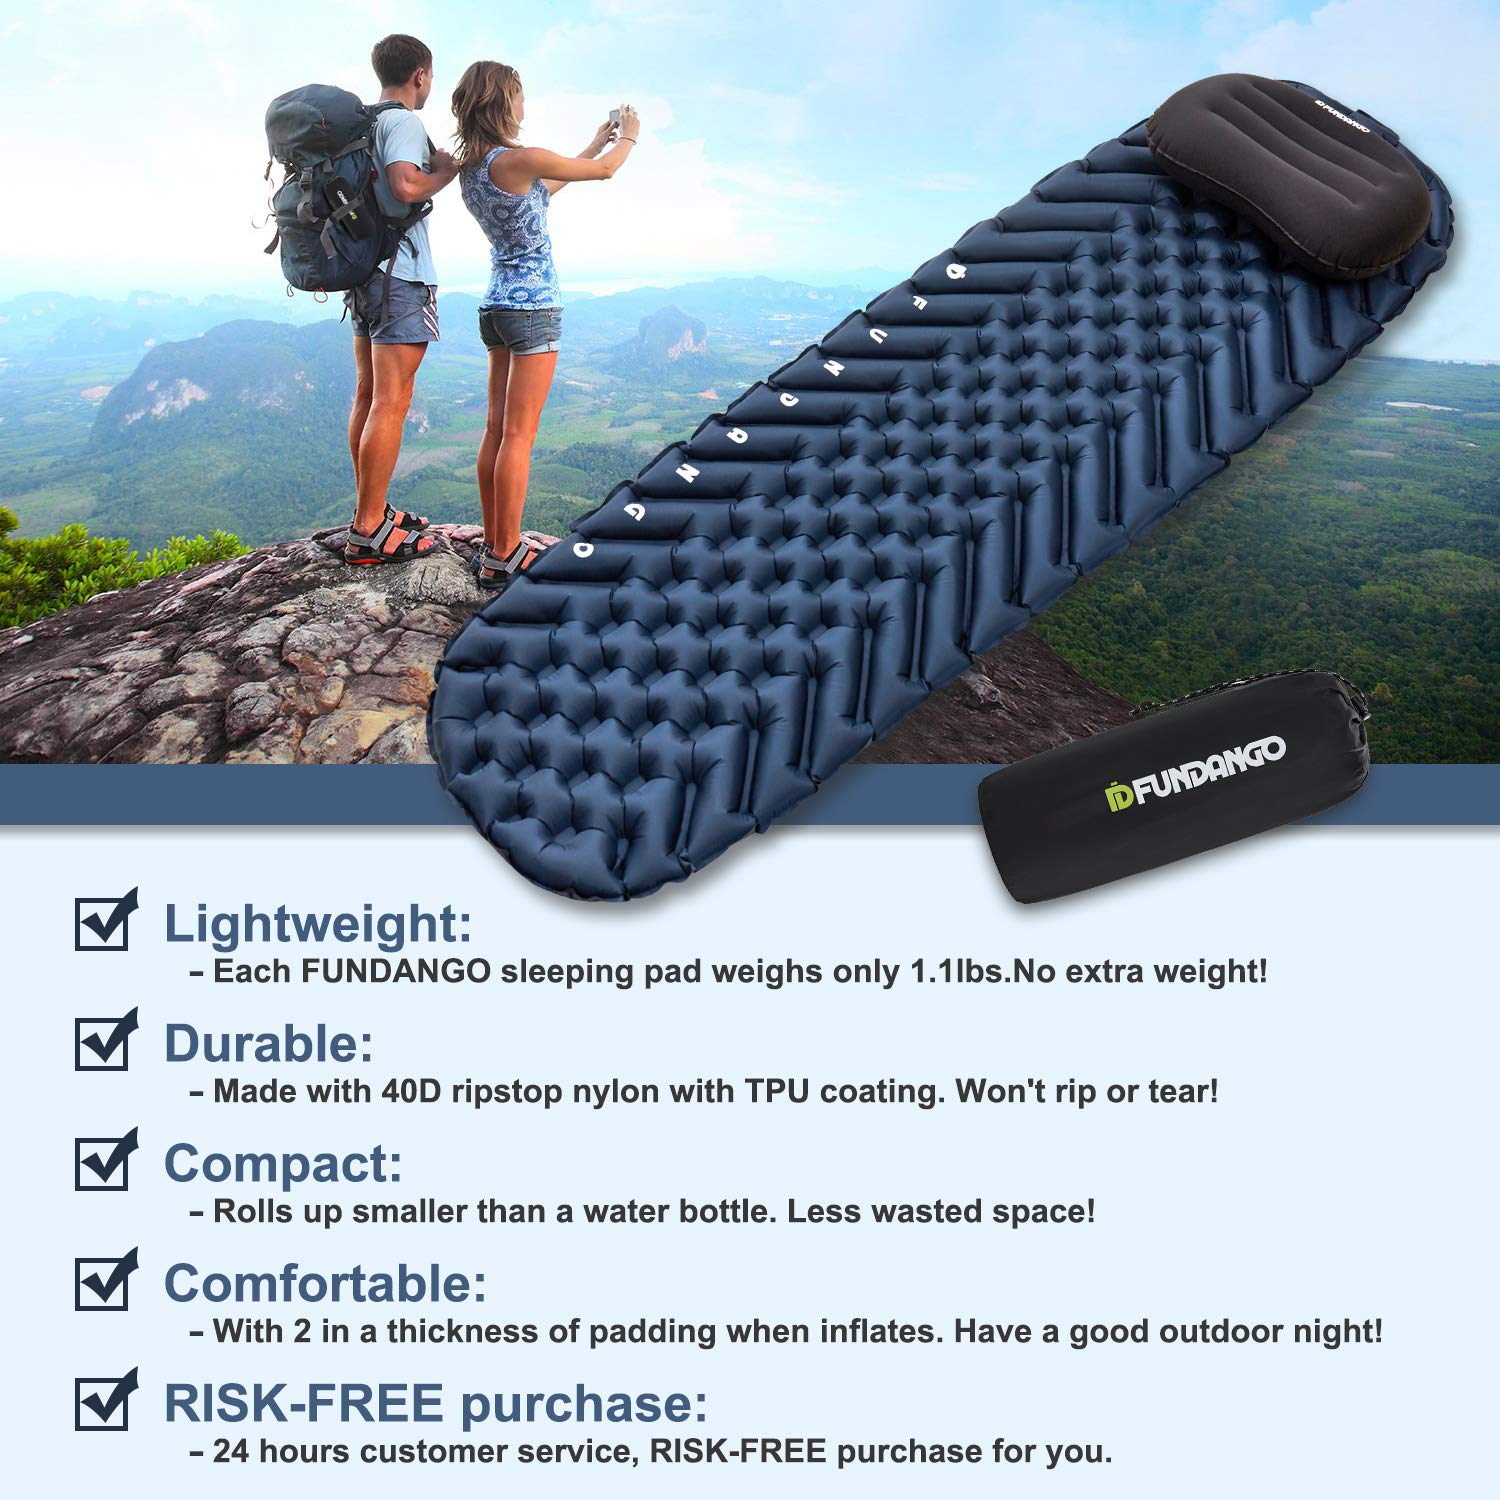 Camping Sleeping Pad,Inflatable Sleeping Mat with Pillow,Portable/&Folding Air Pad Ultralight Compact Sleeping Mattress With Waterproof Carrying Bag for Outdoor Hiking Travel Hammock Tent Backpacking